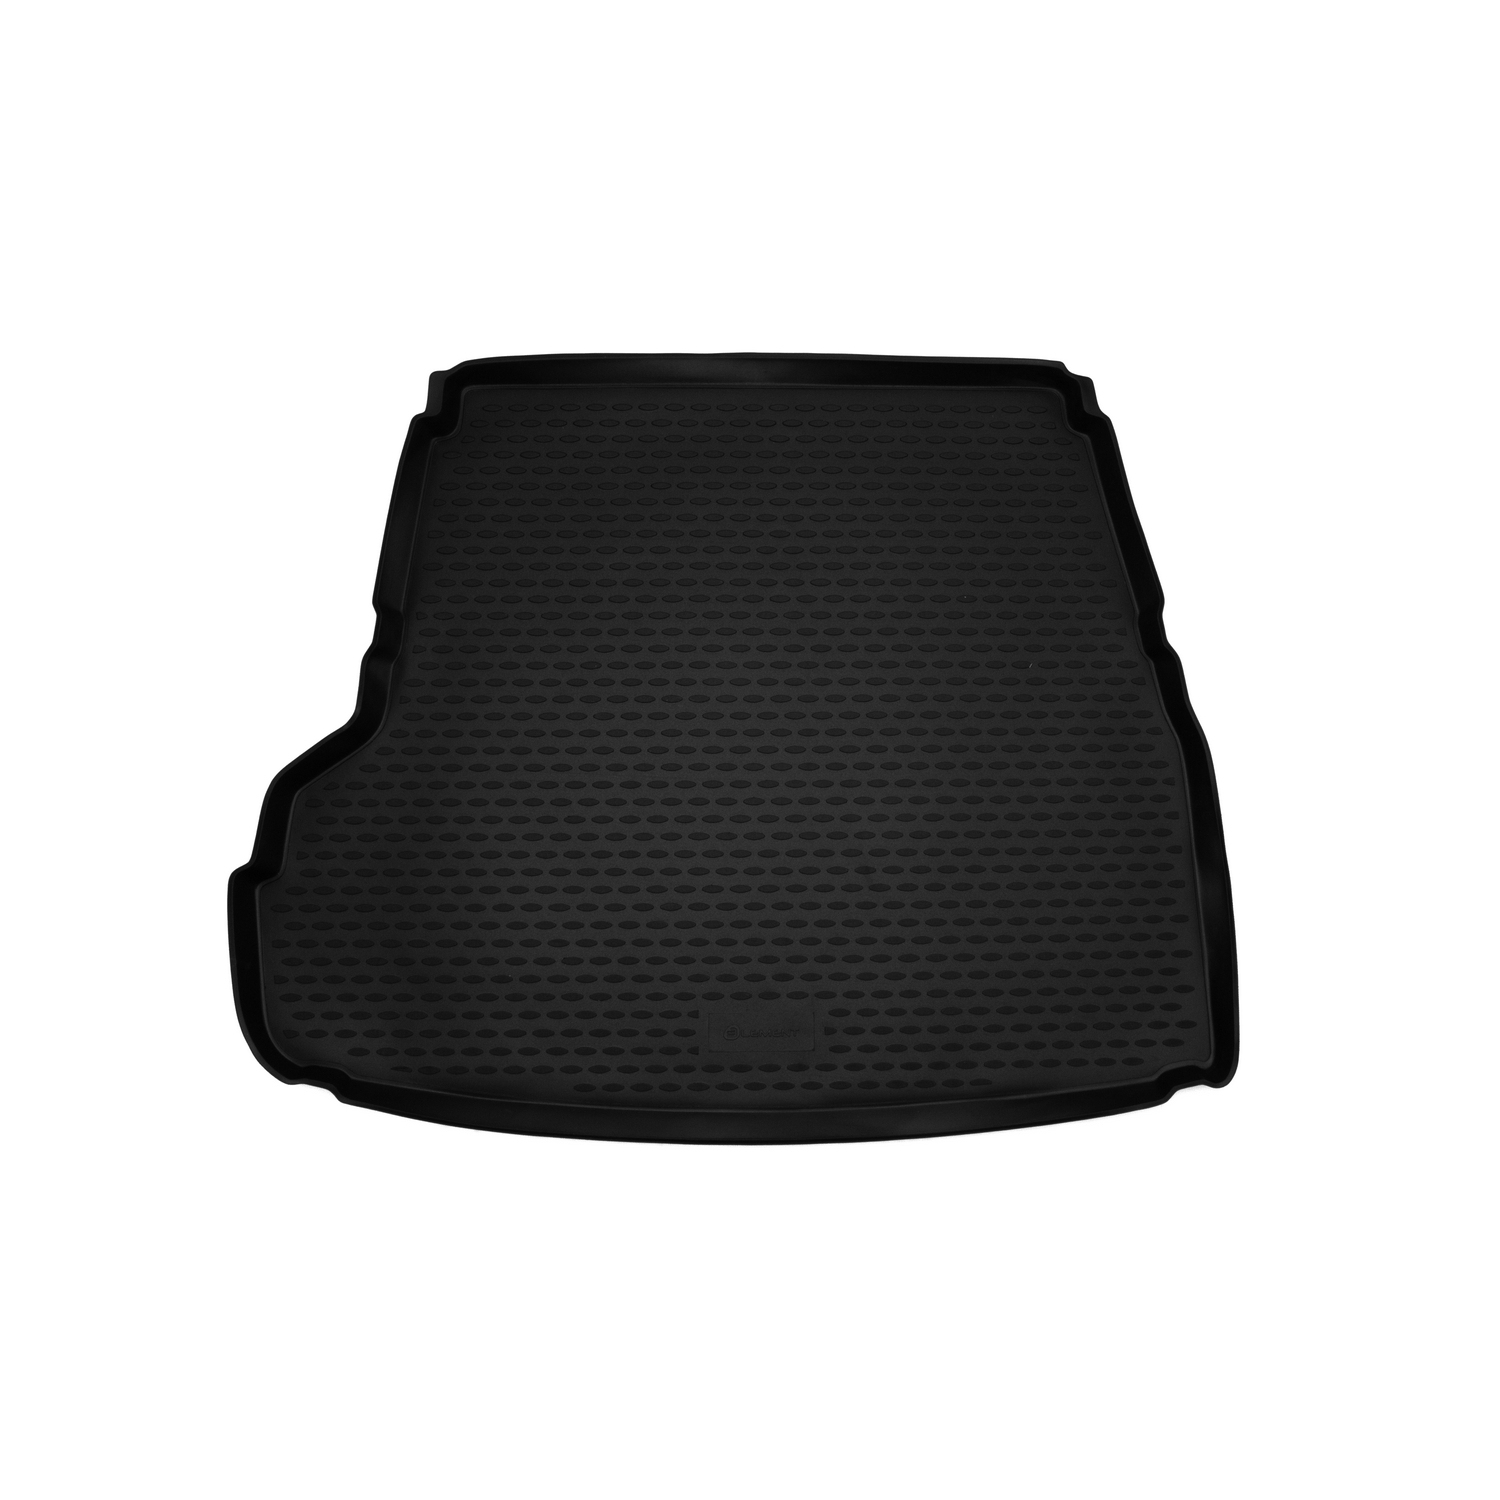 Trunk Mat For HYUNDAI Grandeur 05/2005-, ETS. NLC.20.33.B10